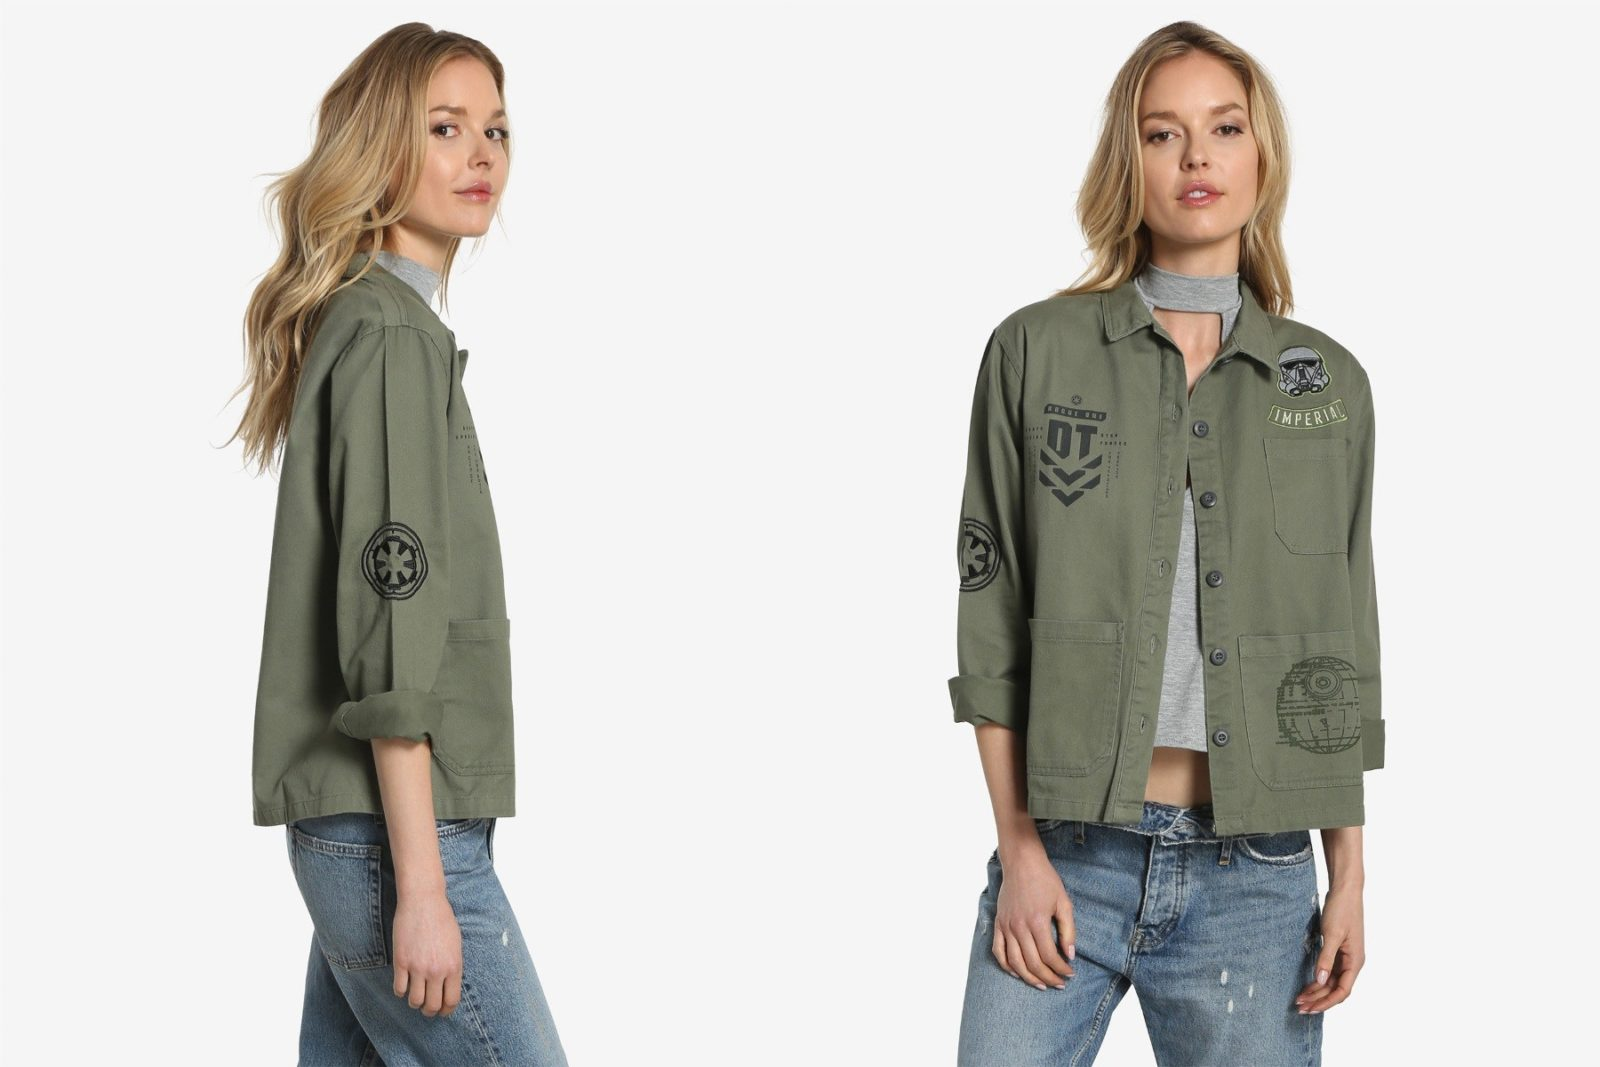 Women's Rogue One Imperial Jacket